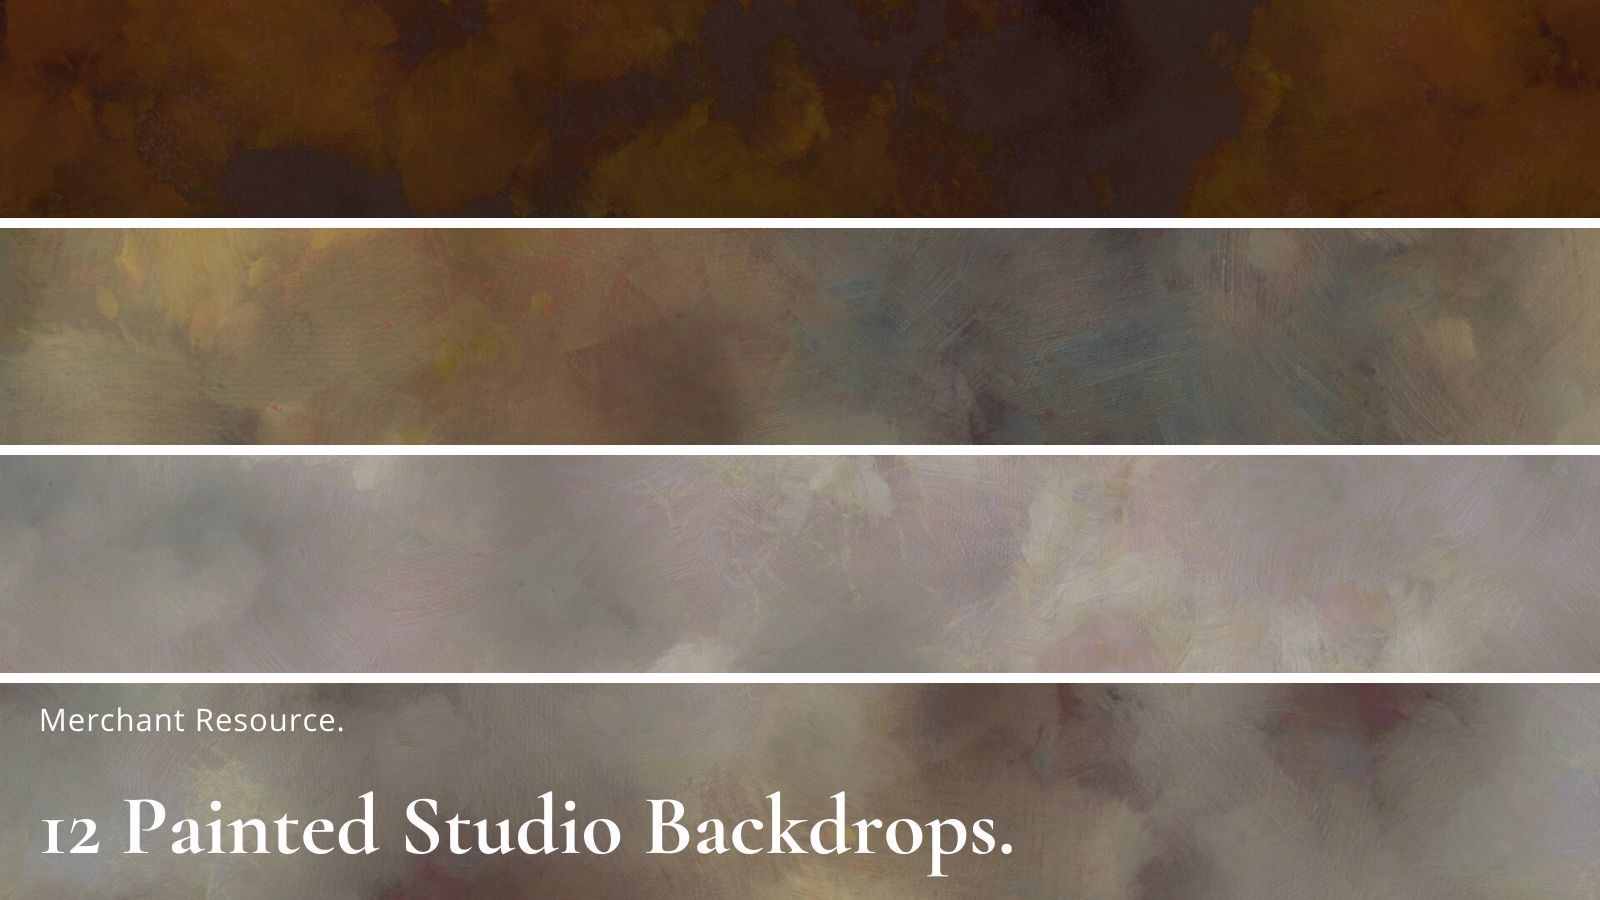 12 Painted Studio Backdrops by Annikmi